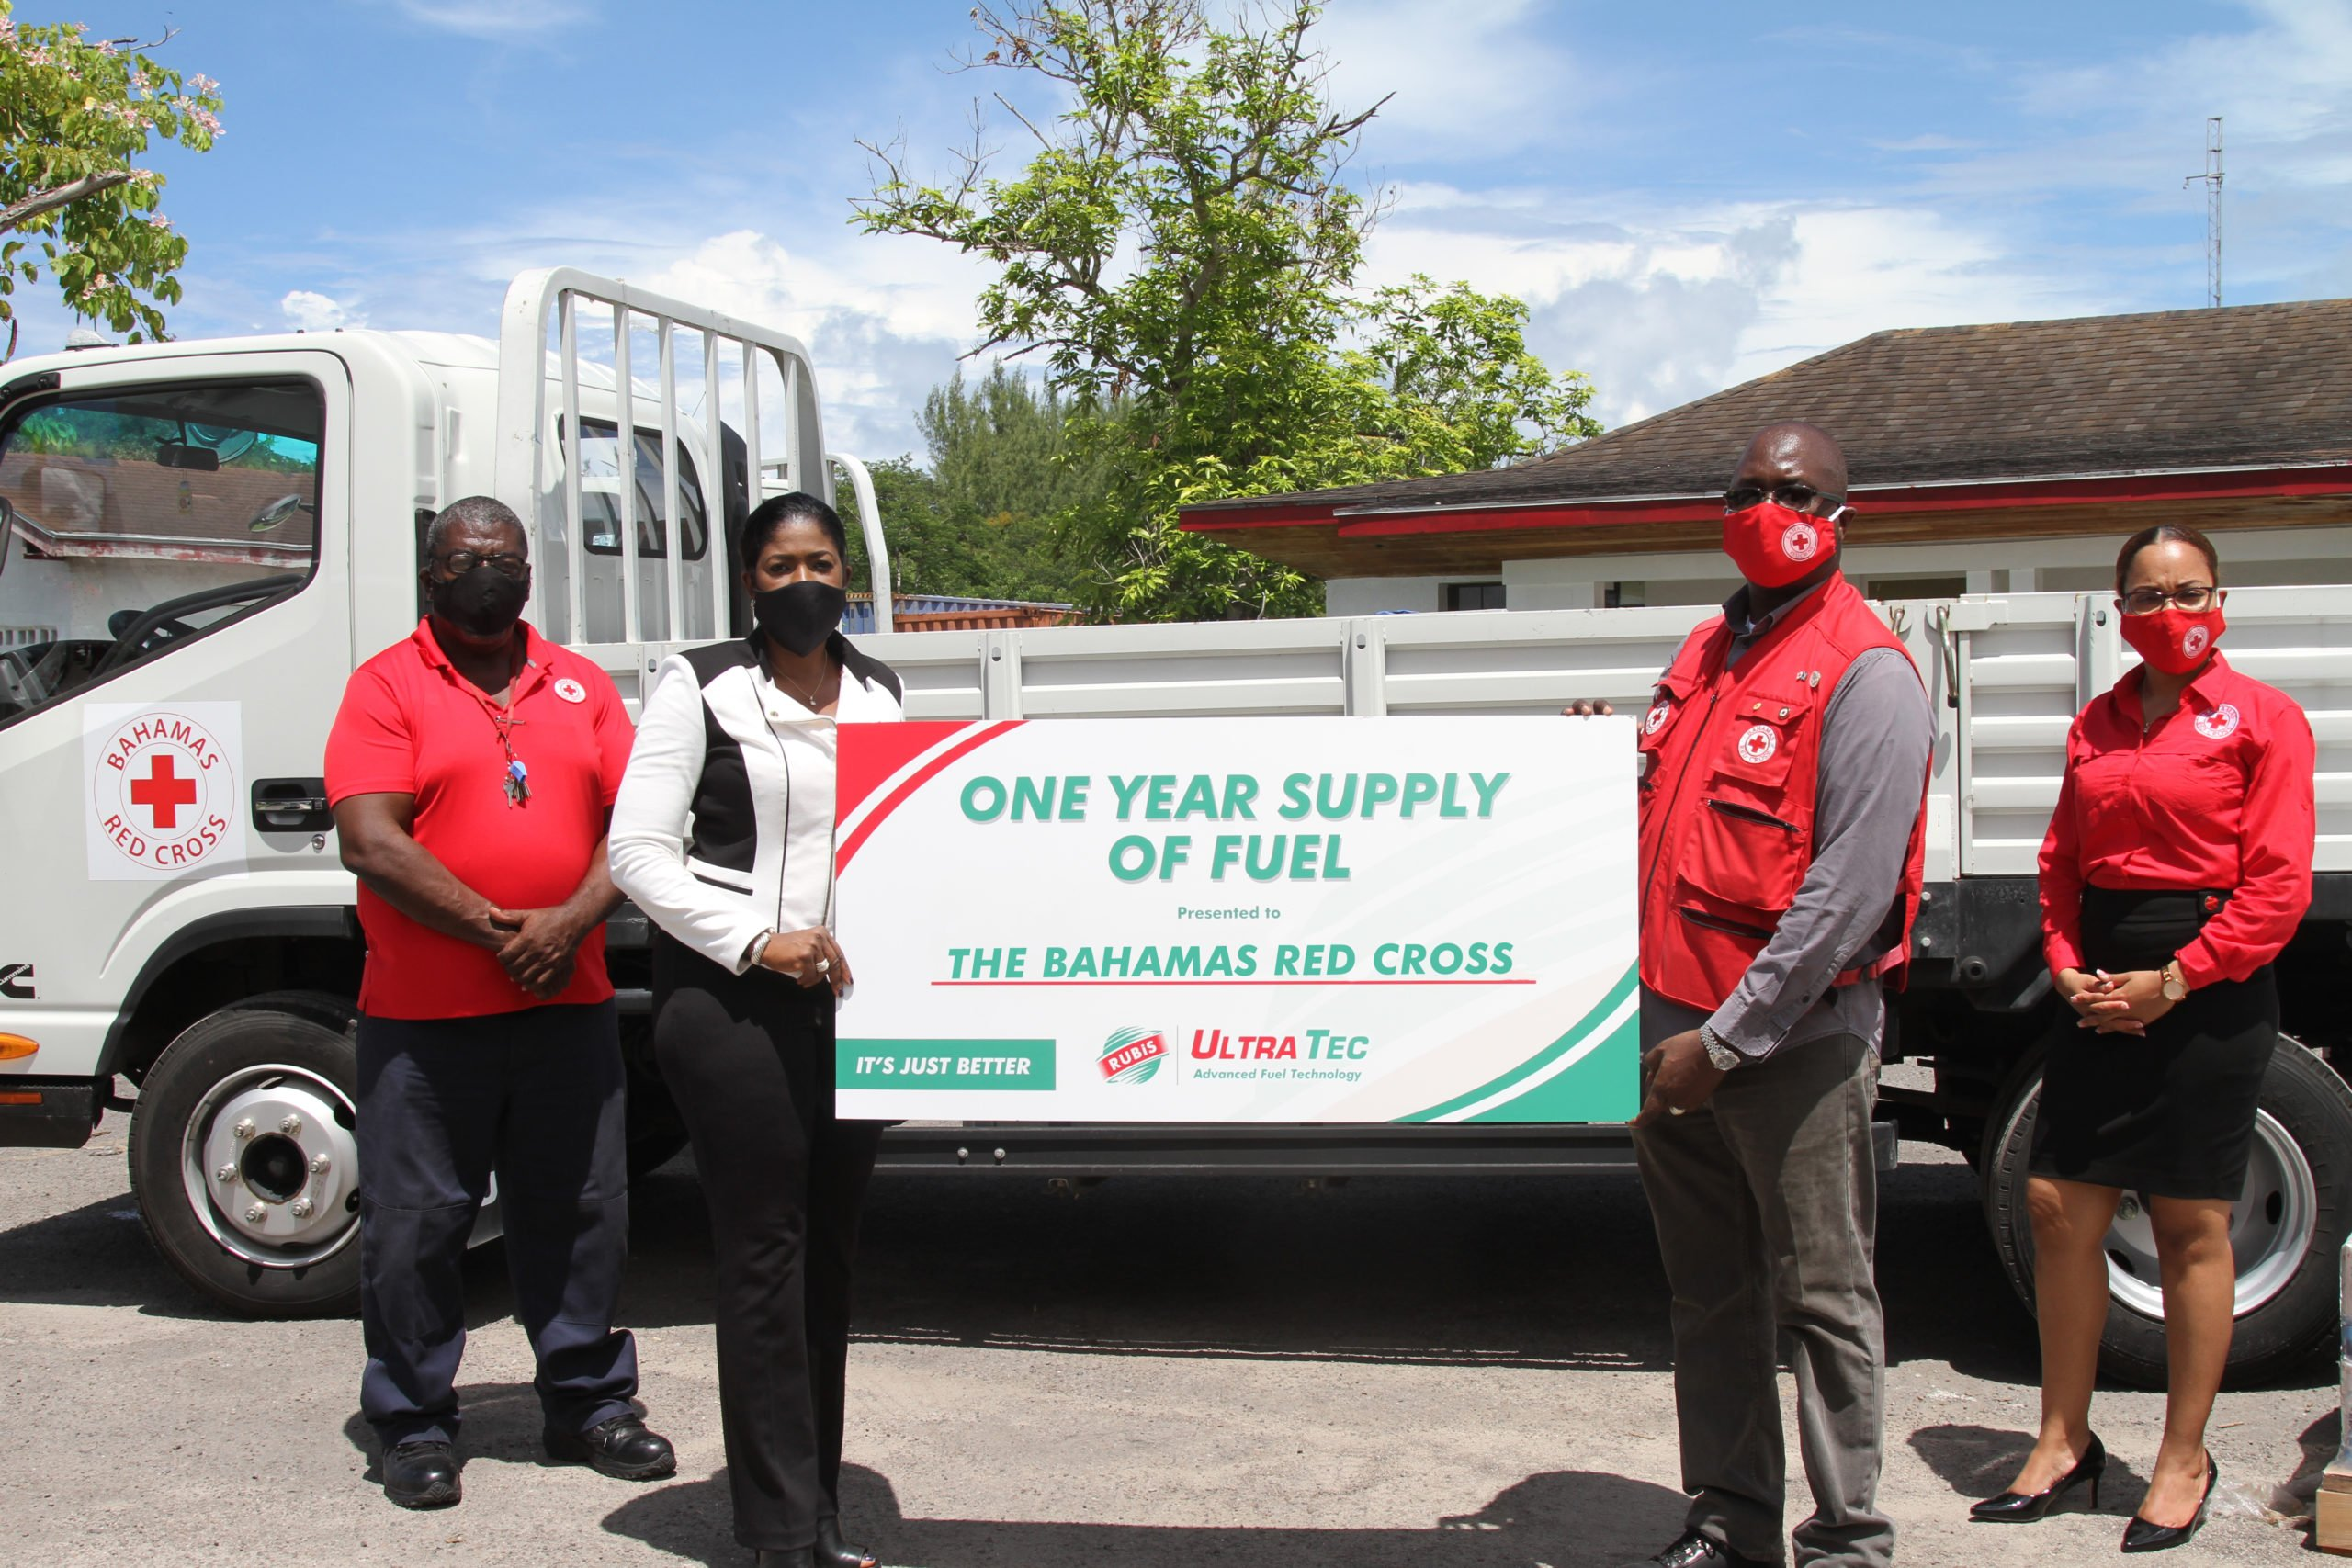 RUBiS Fuels The Bahamas Red Cross